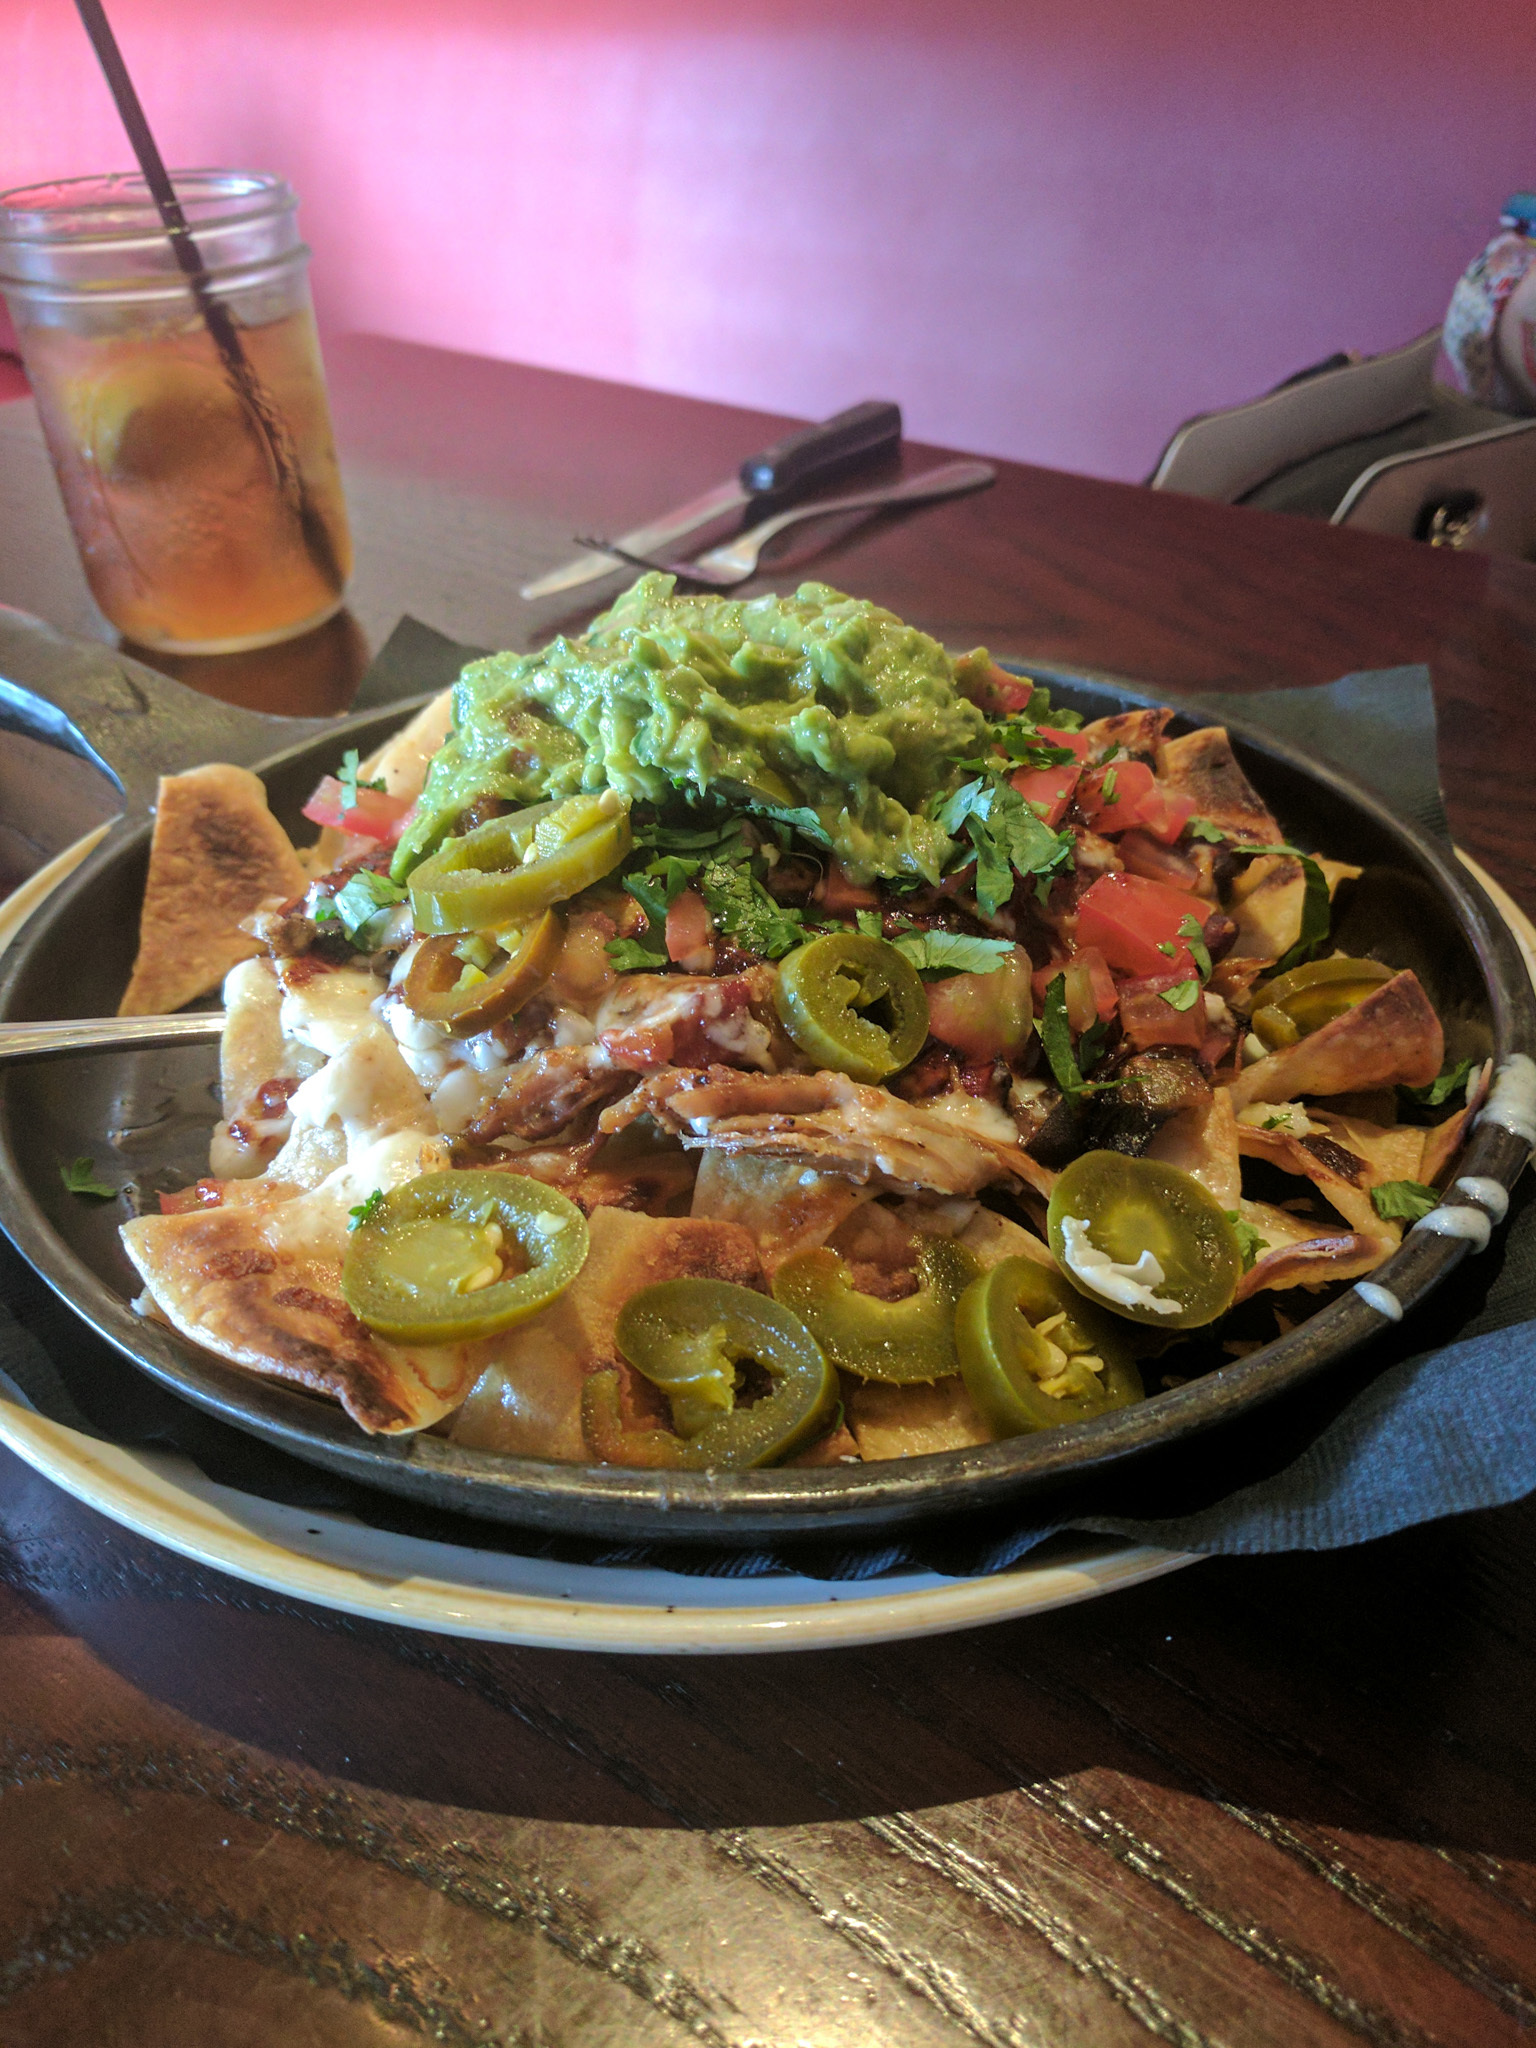 Pulled pork nachos from Gus's BBQ